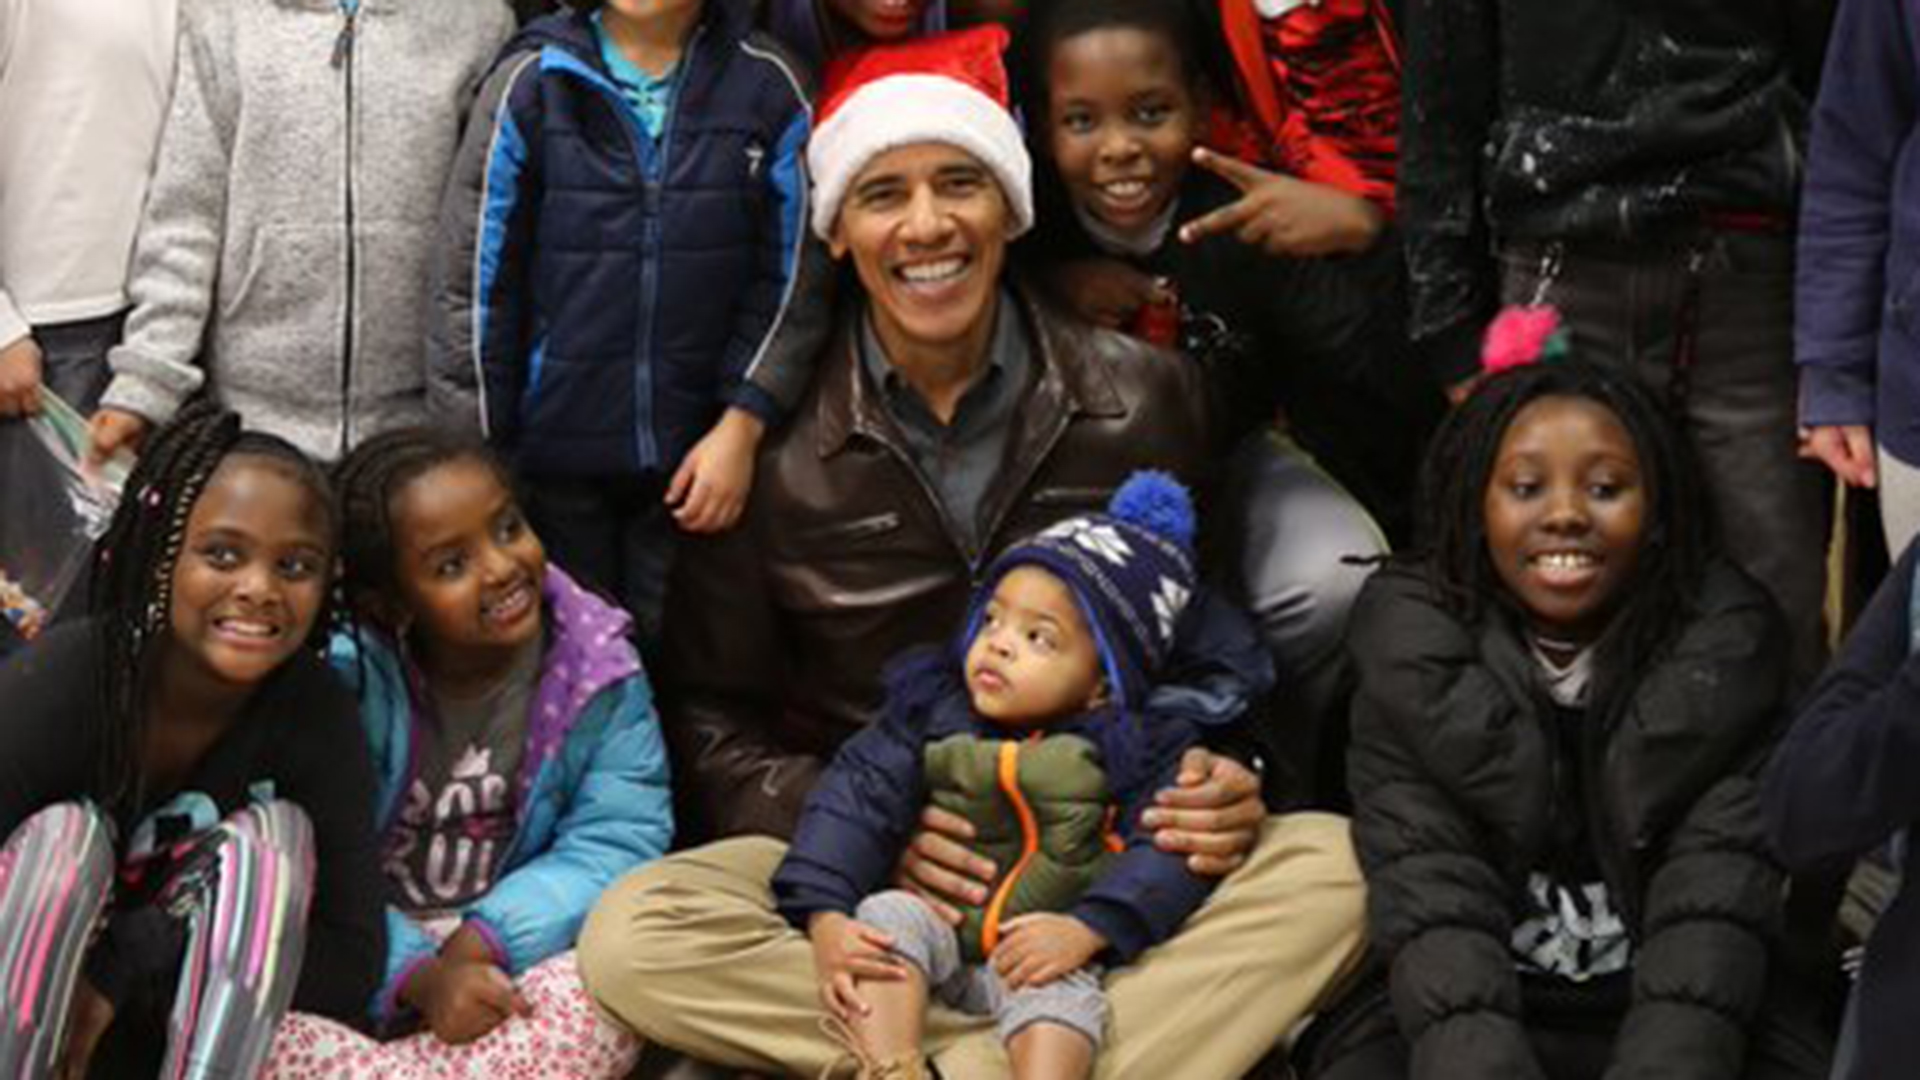 Watch Barack Obama bring Christmas cheer to a group of middle schoolers